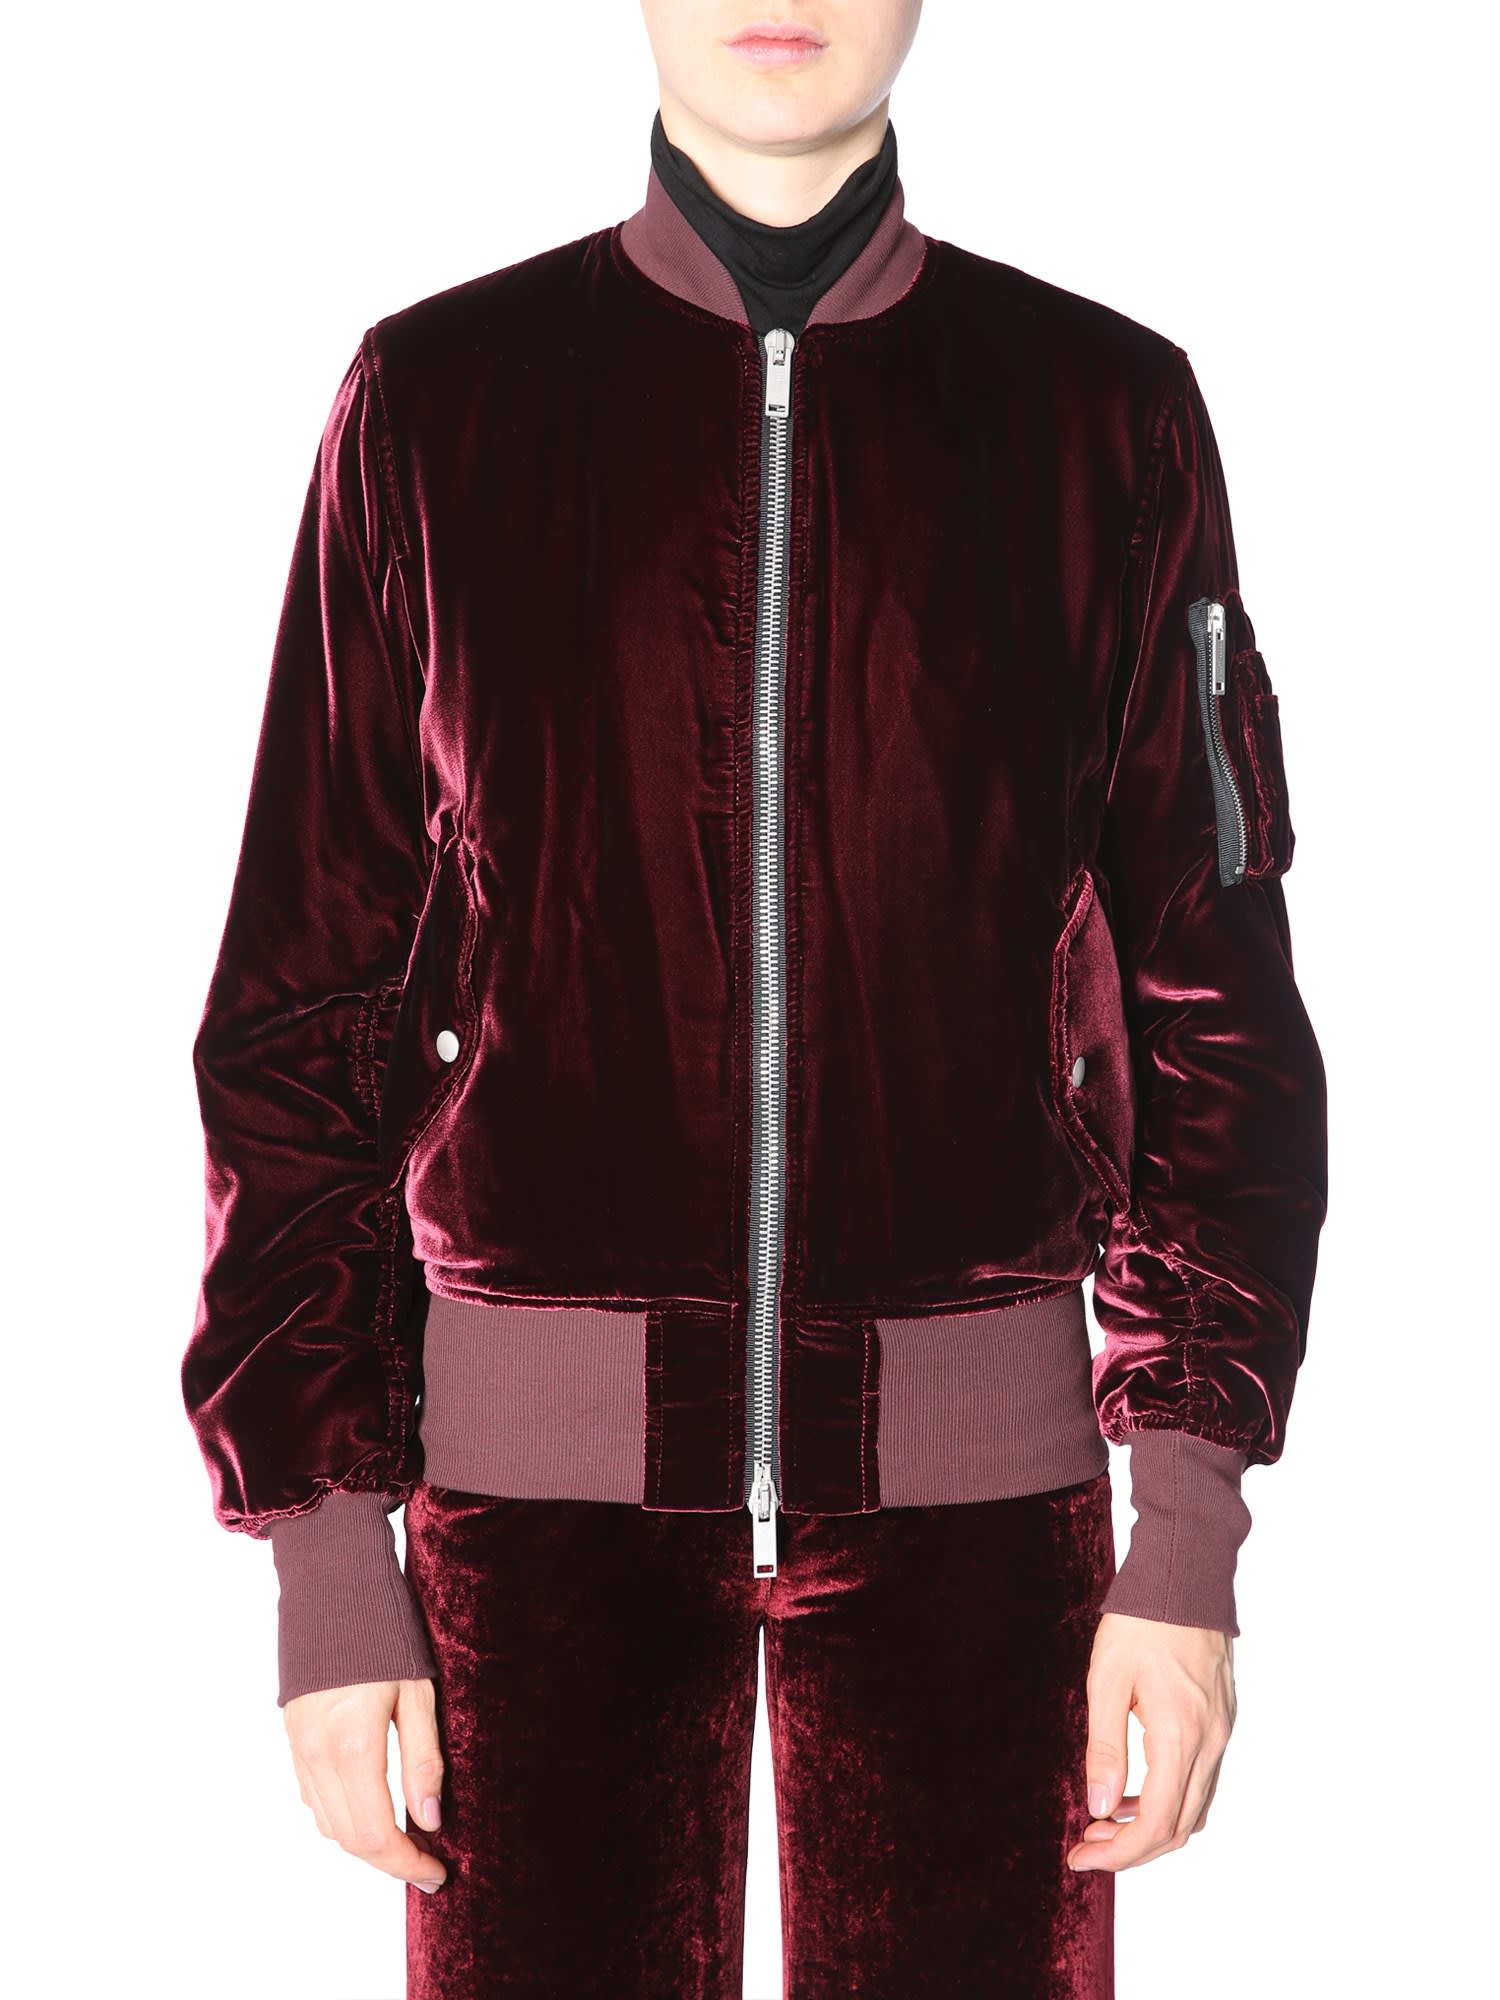 Ben Taverniti Unravel Project Velvet Bomber